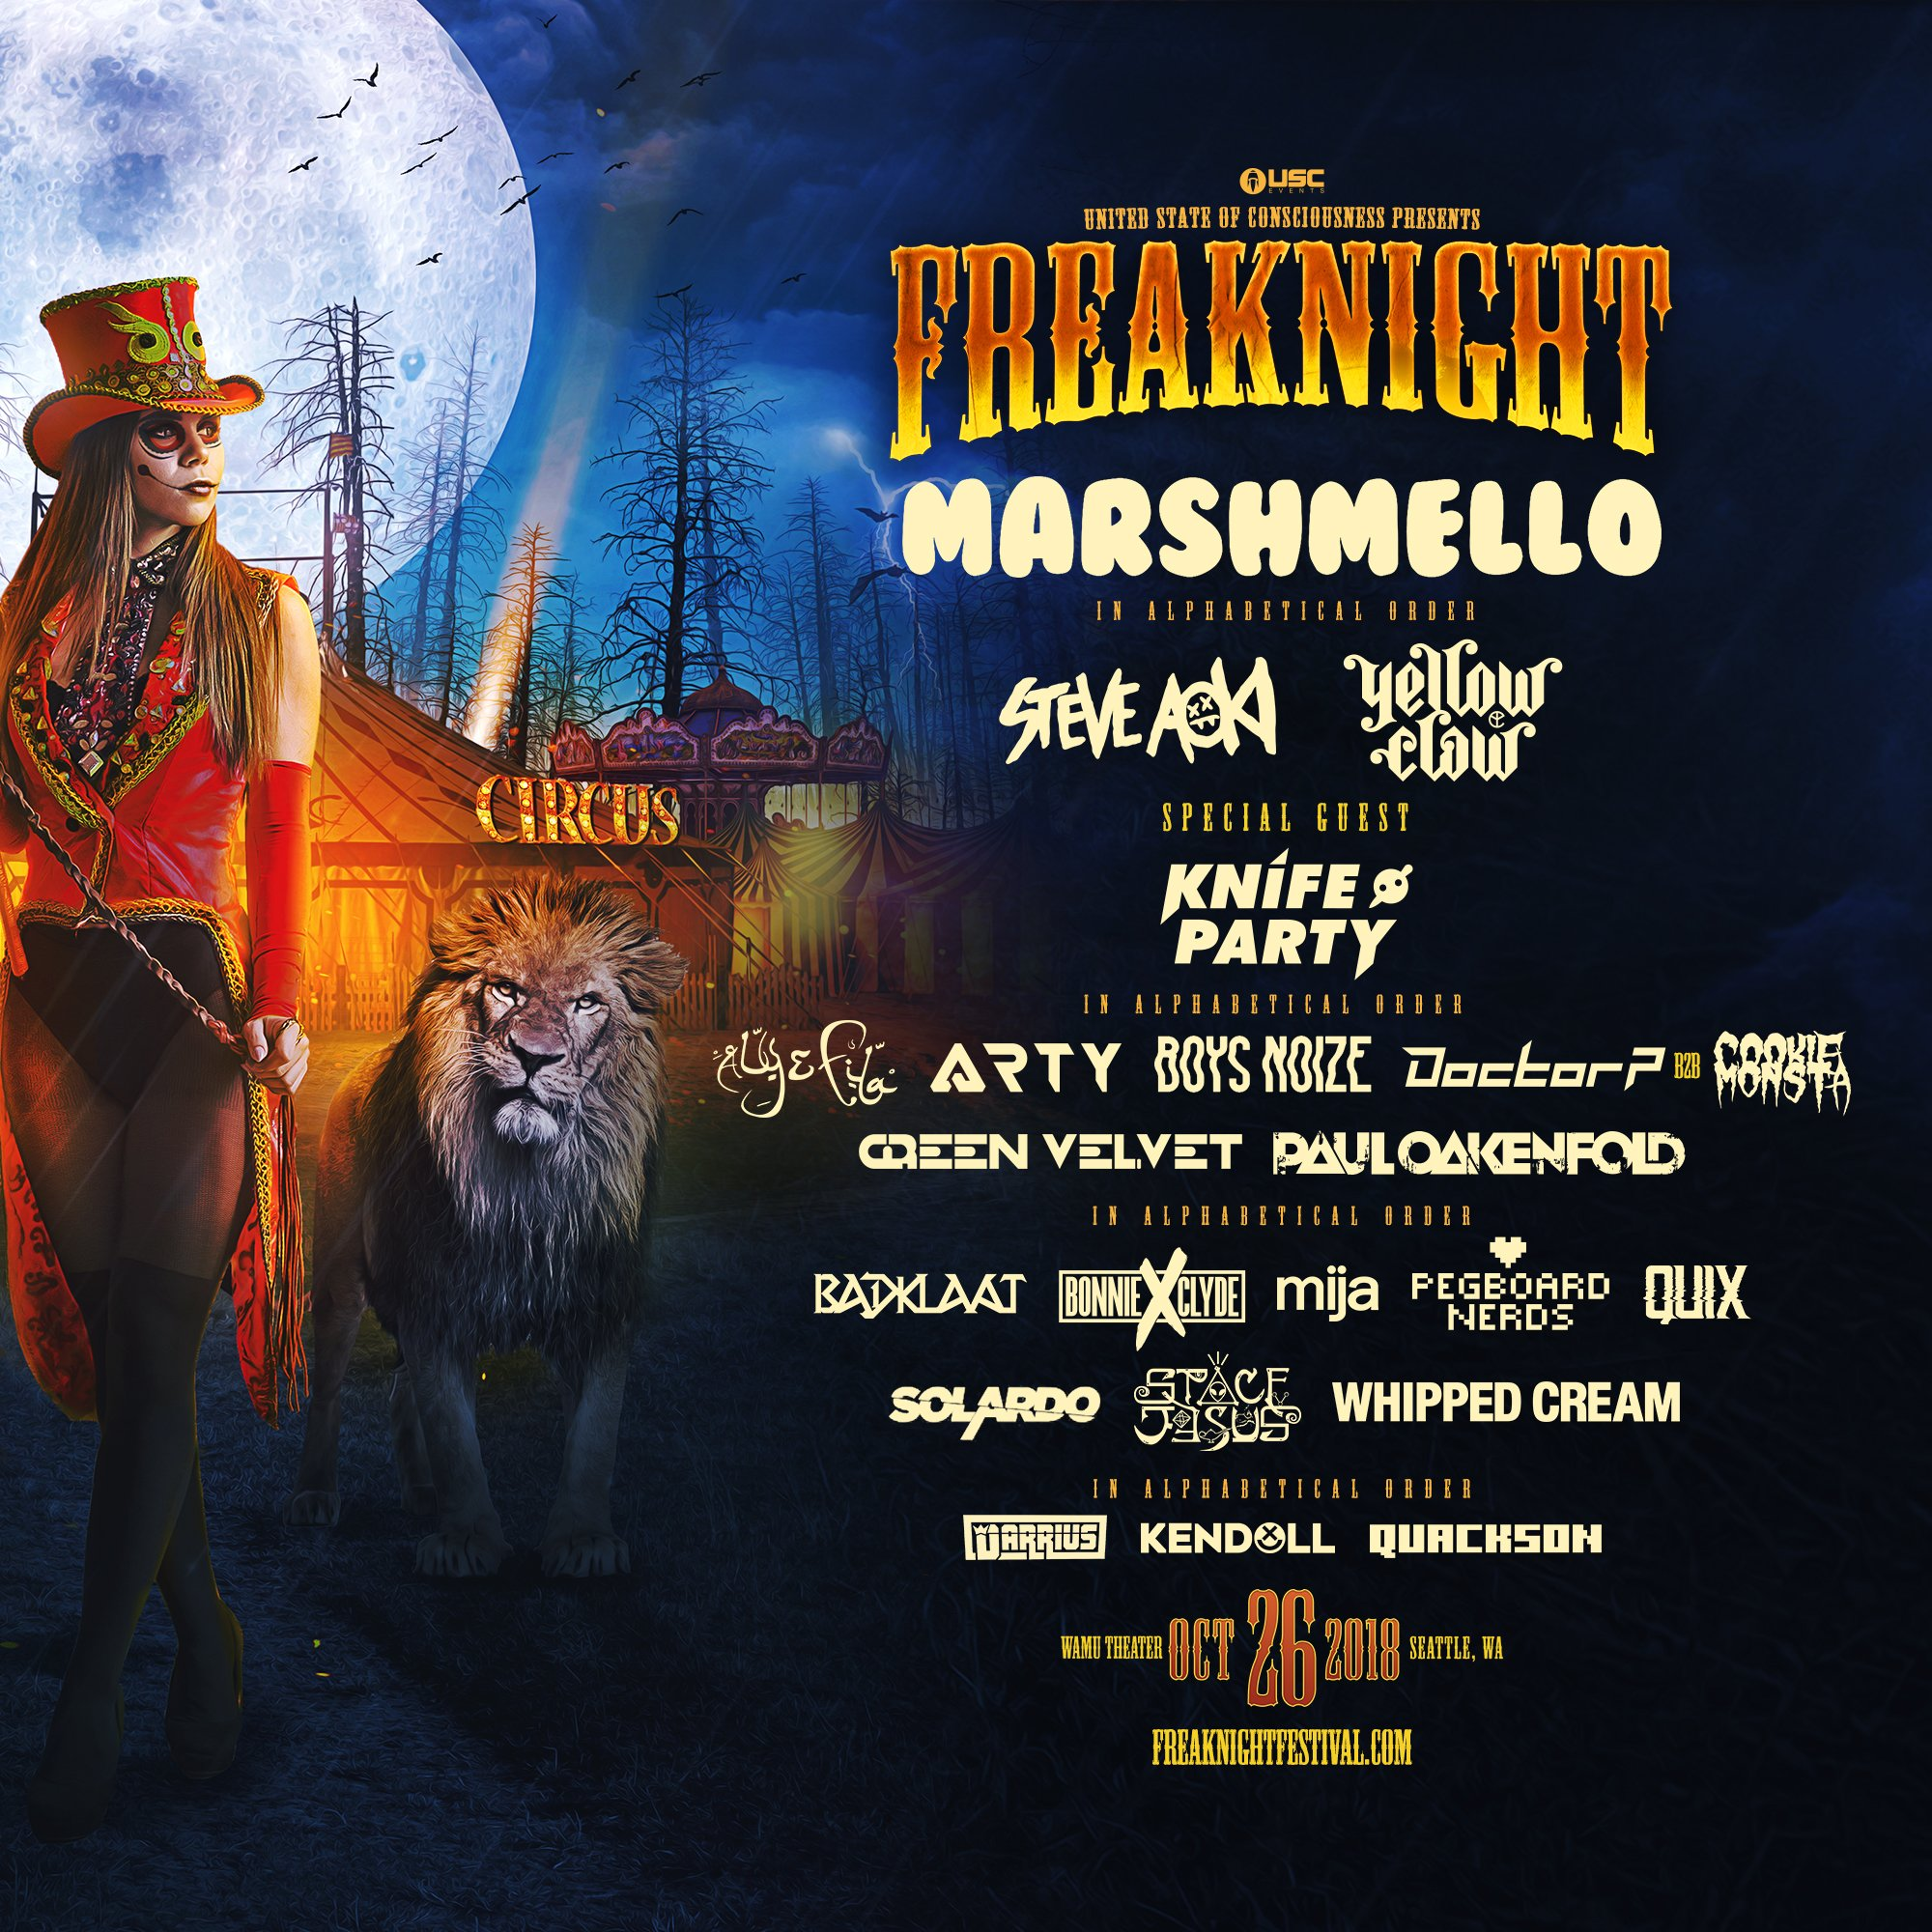 FREAKNIGHT FESTIVAL: Marshmello, Steve Aoki, Yellow Claw, Knife Party & More!